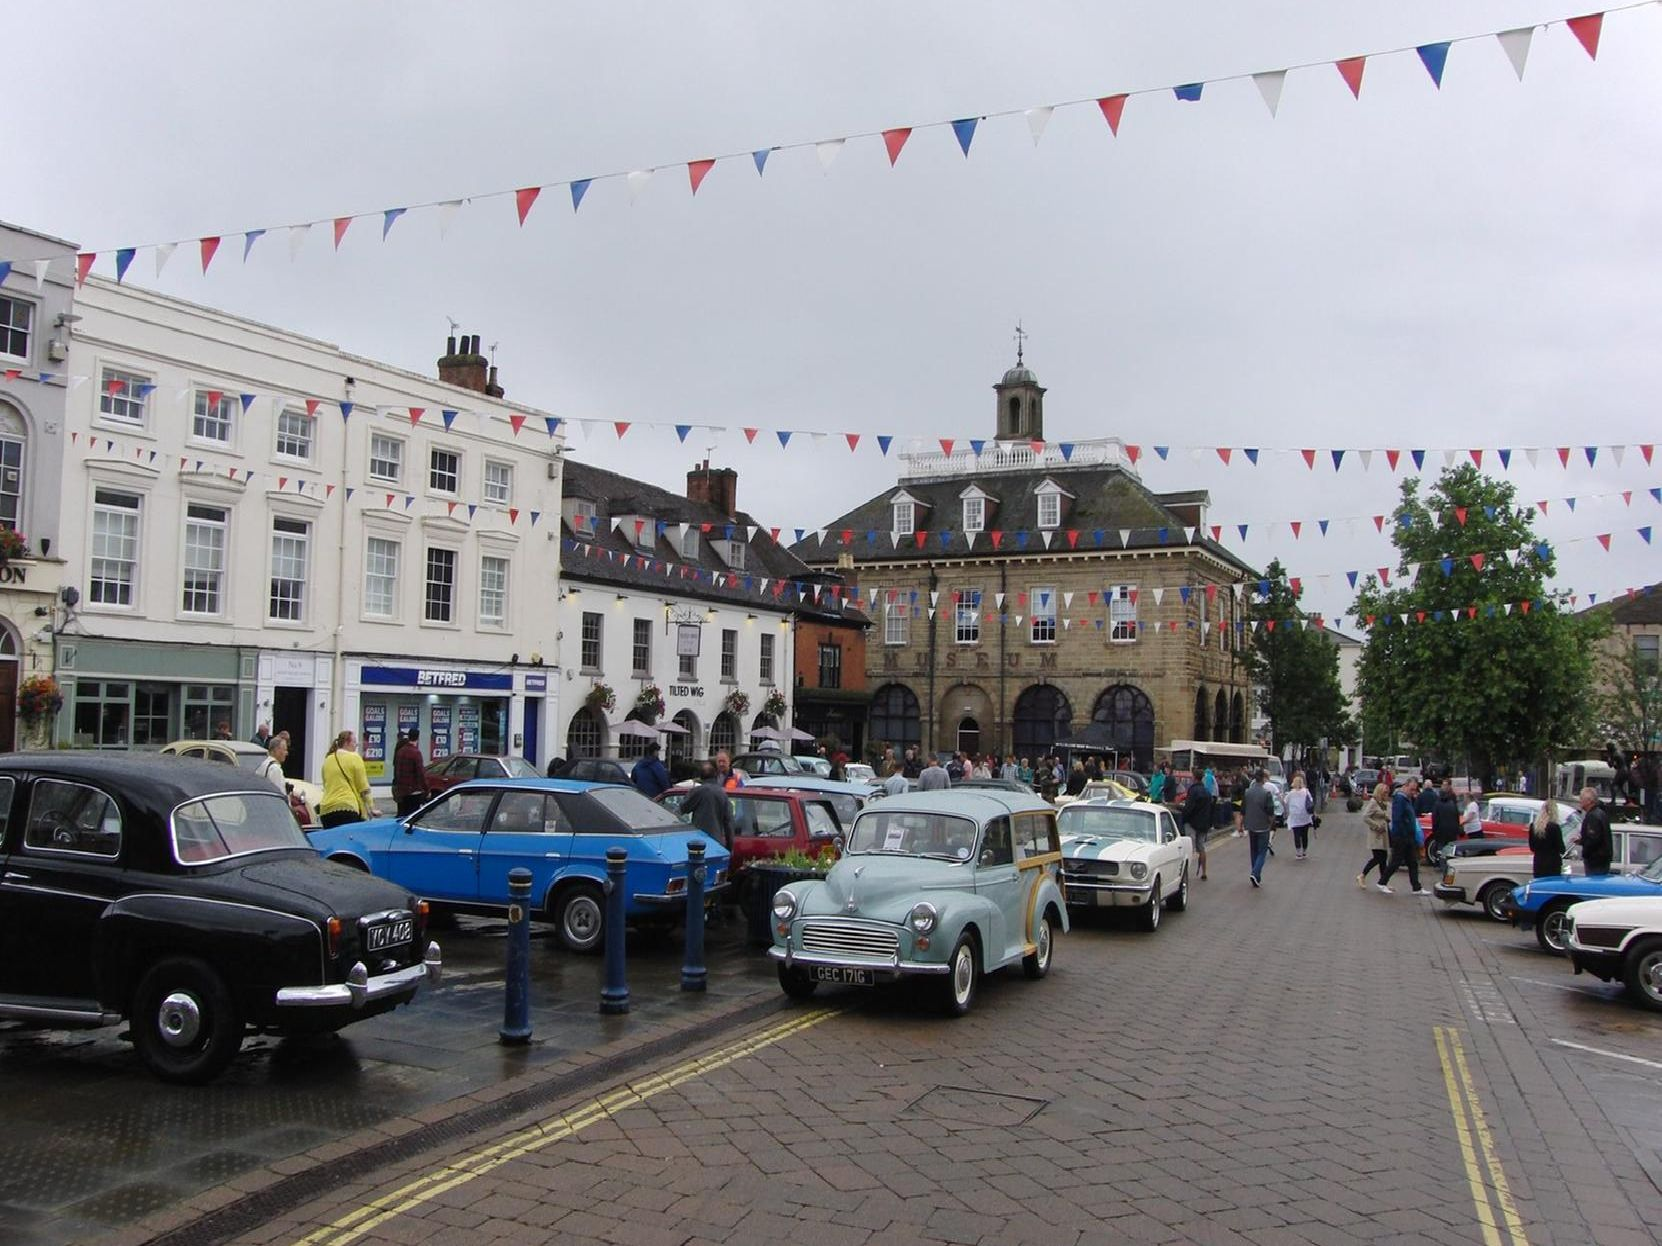 Warwick Court Leet's Classic Car Show. Photo by Geoff Ousbey.